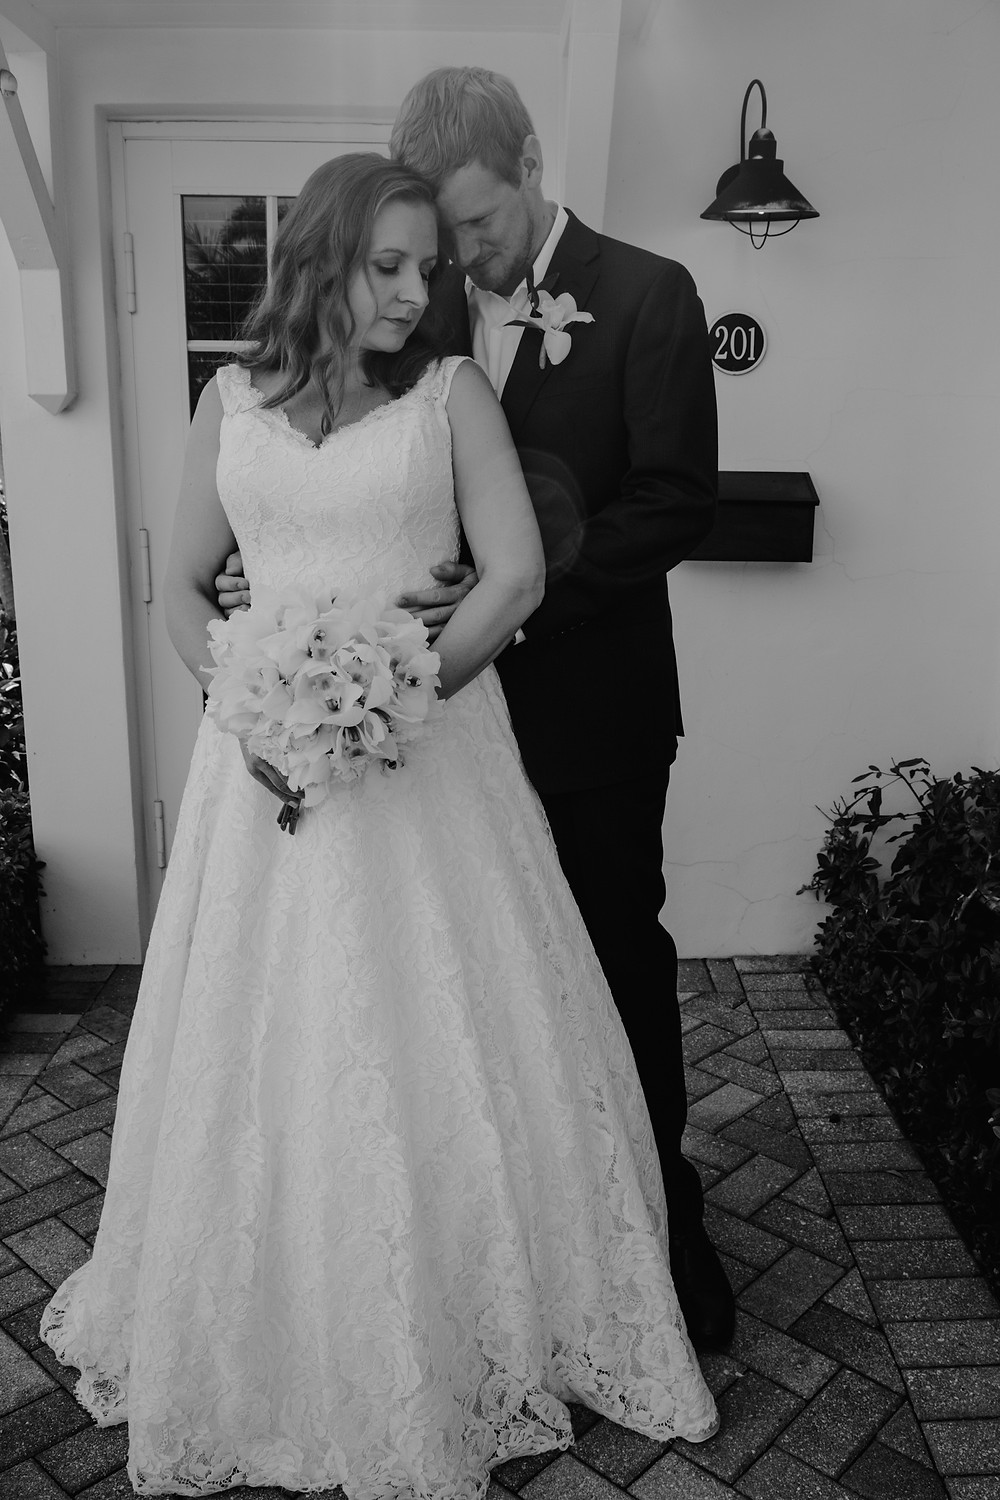 Pandemic wedding with bride and groom at home